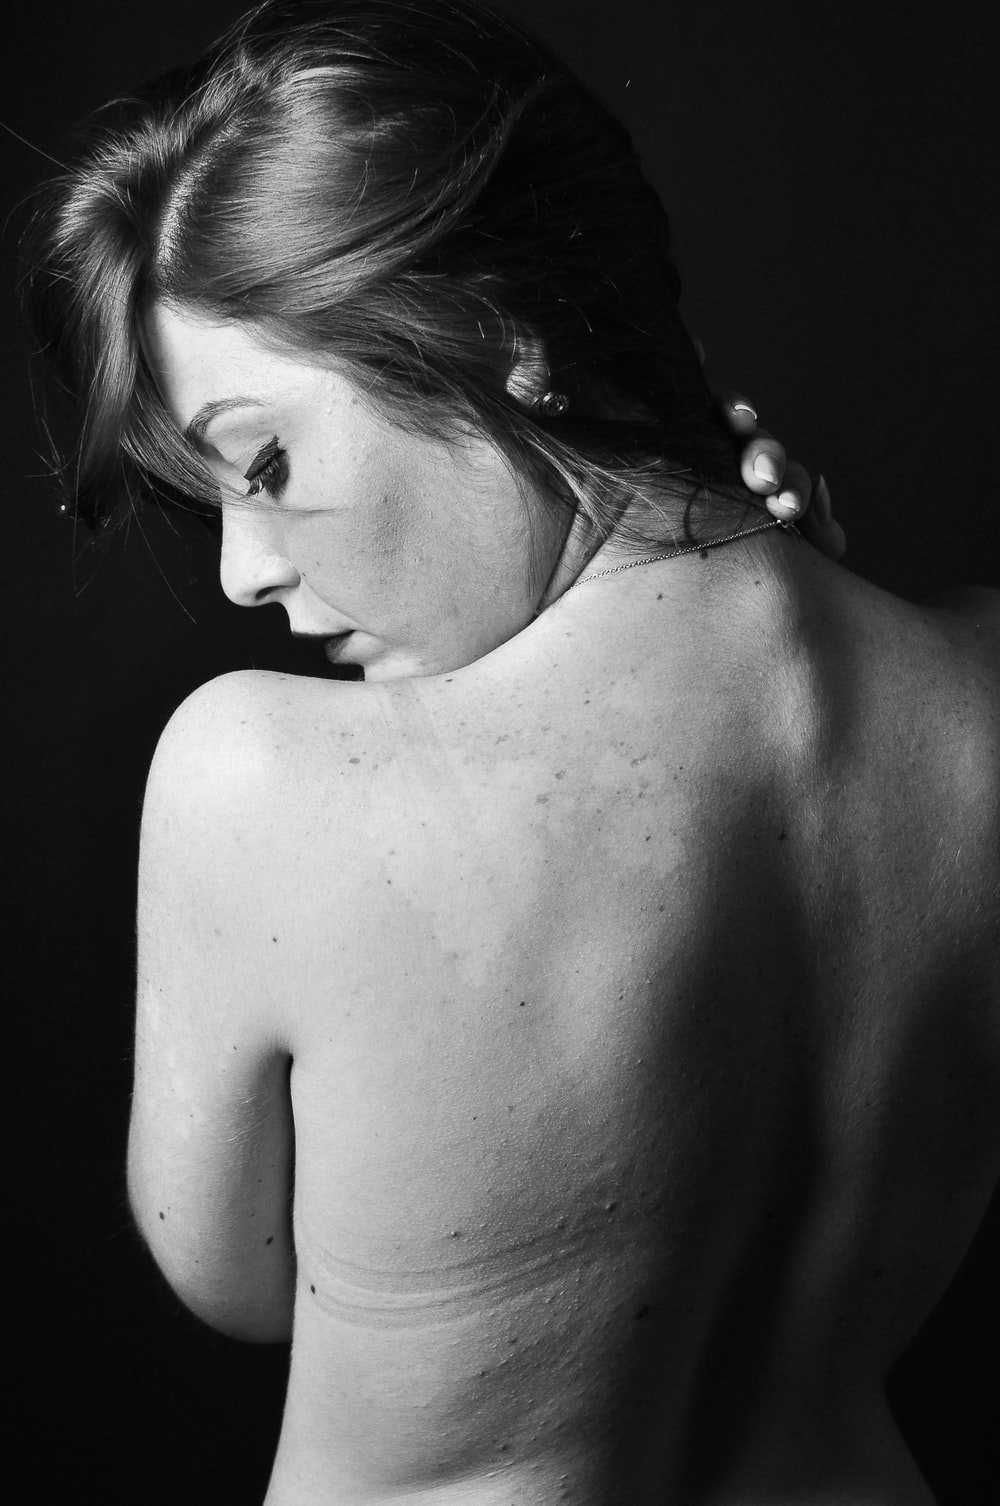 grayscale photo of topless woman